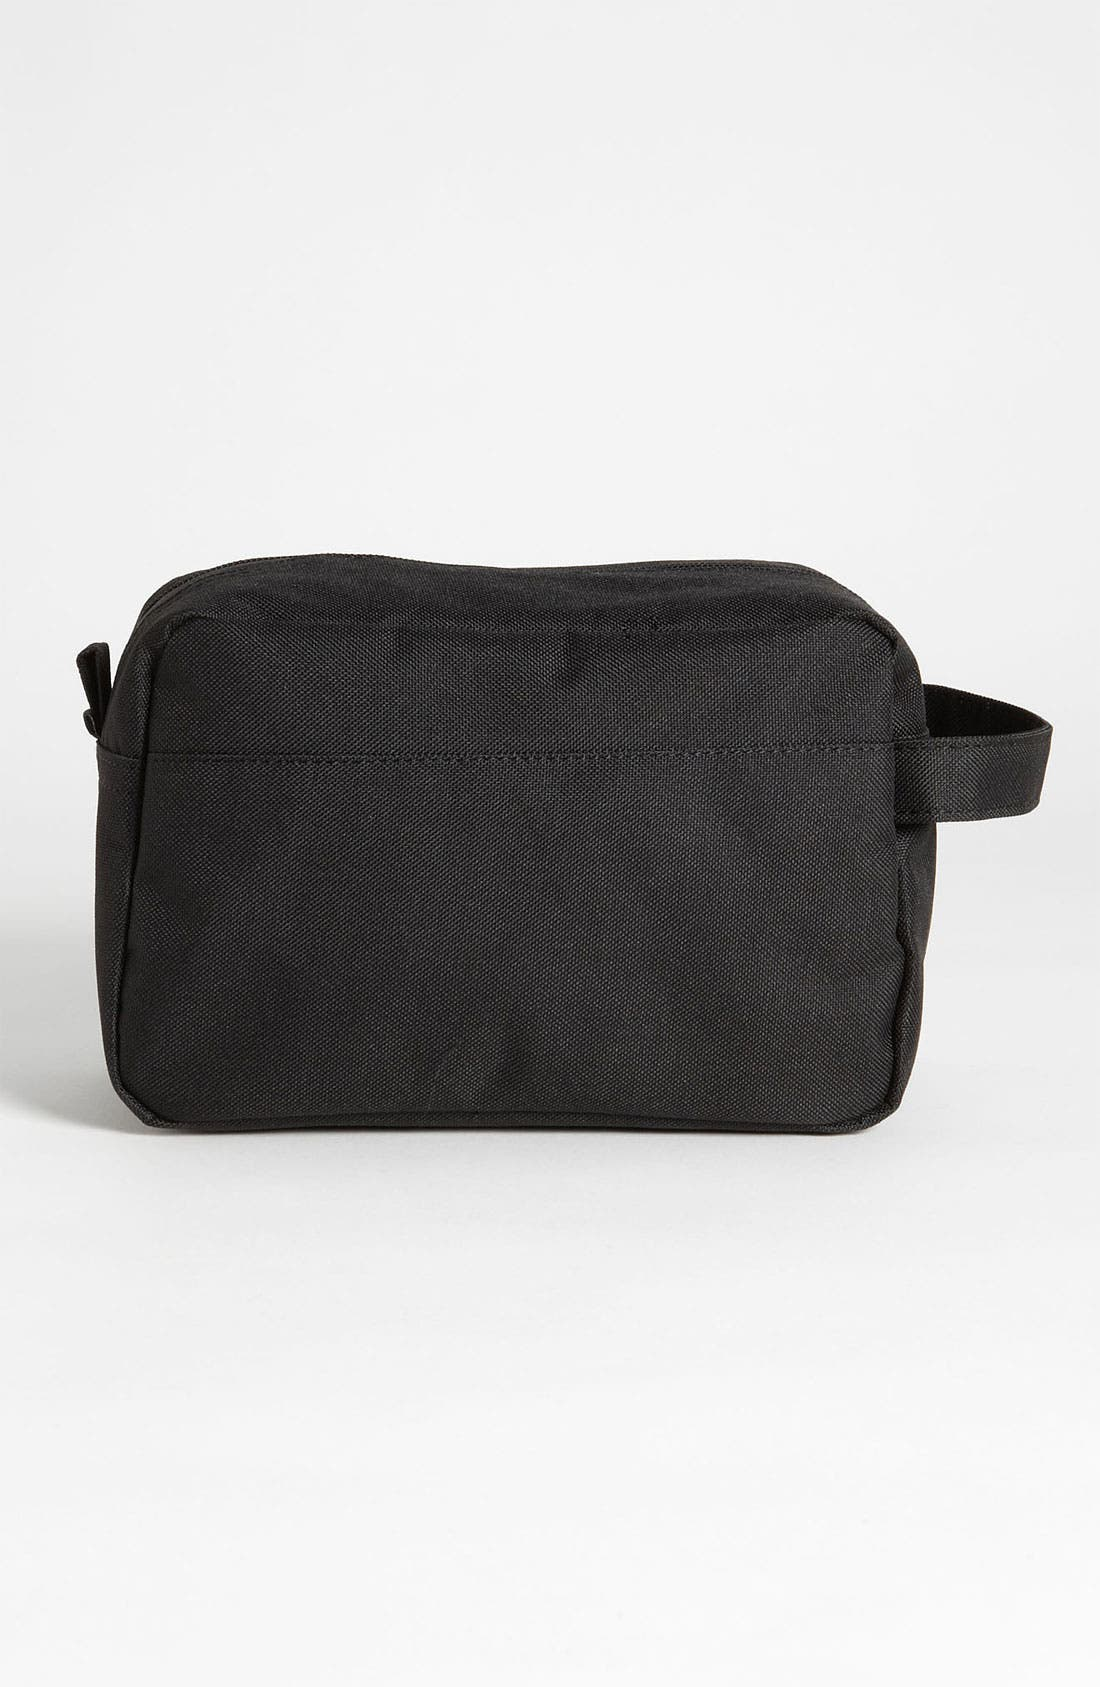 'Chapter' Toiletry Case,                             Alternate thumbnail 7, color,                             BLACK